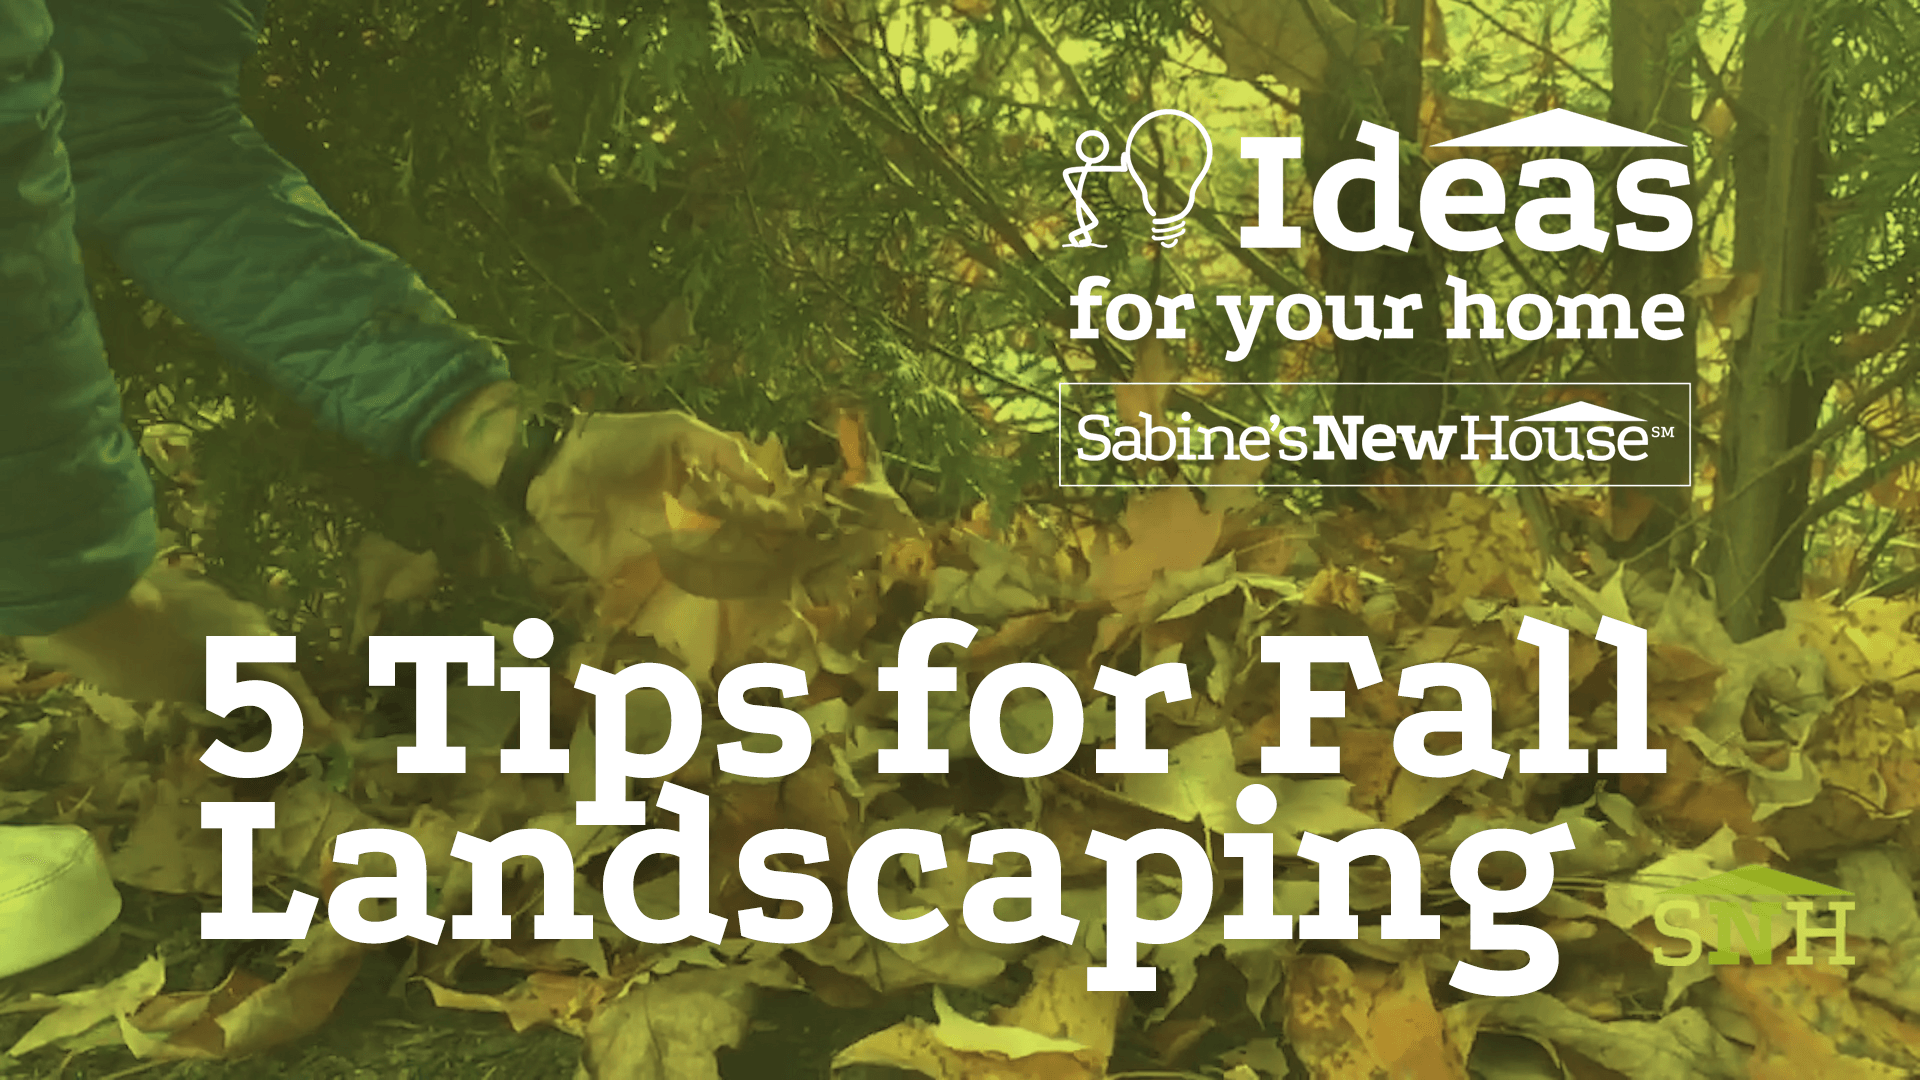 Fall Landscaping Tips five tips for fall landscaping | sabine's new house